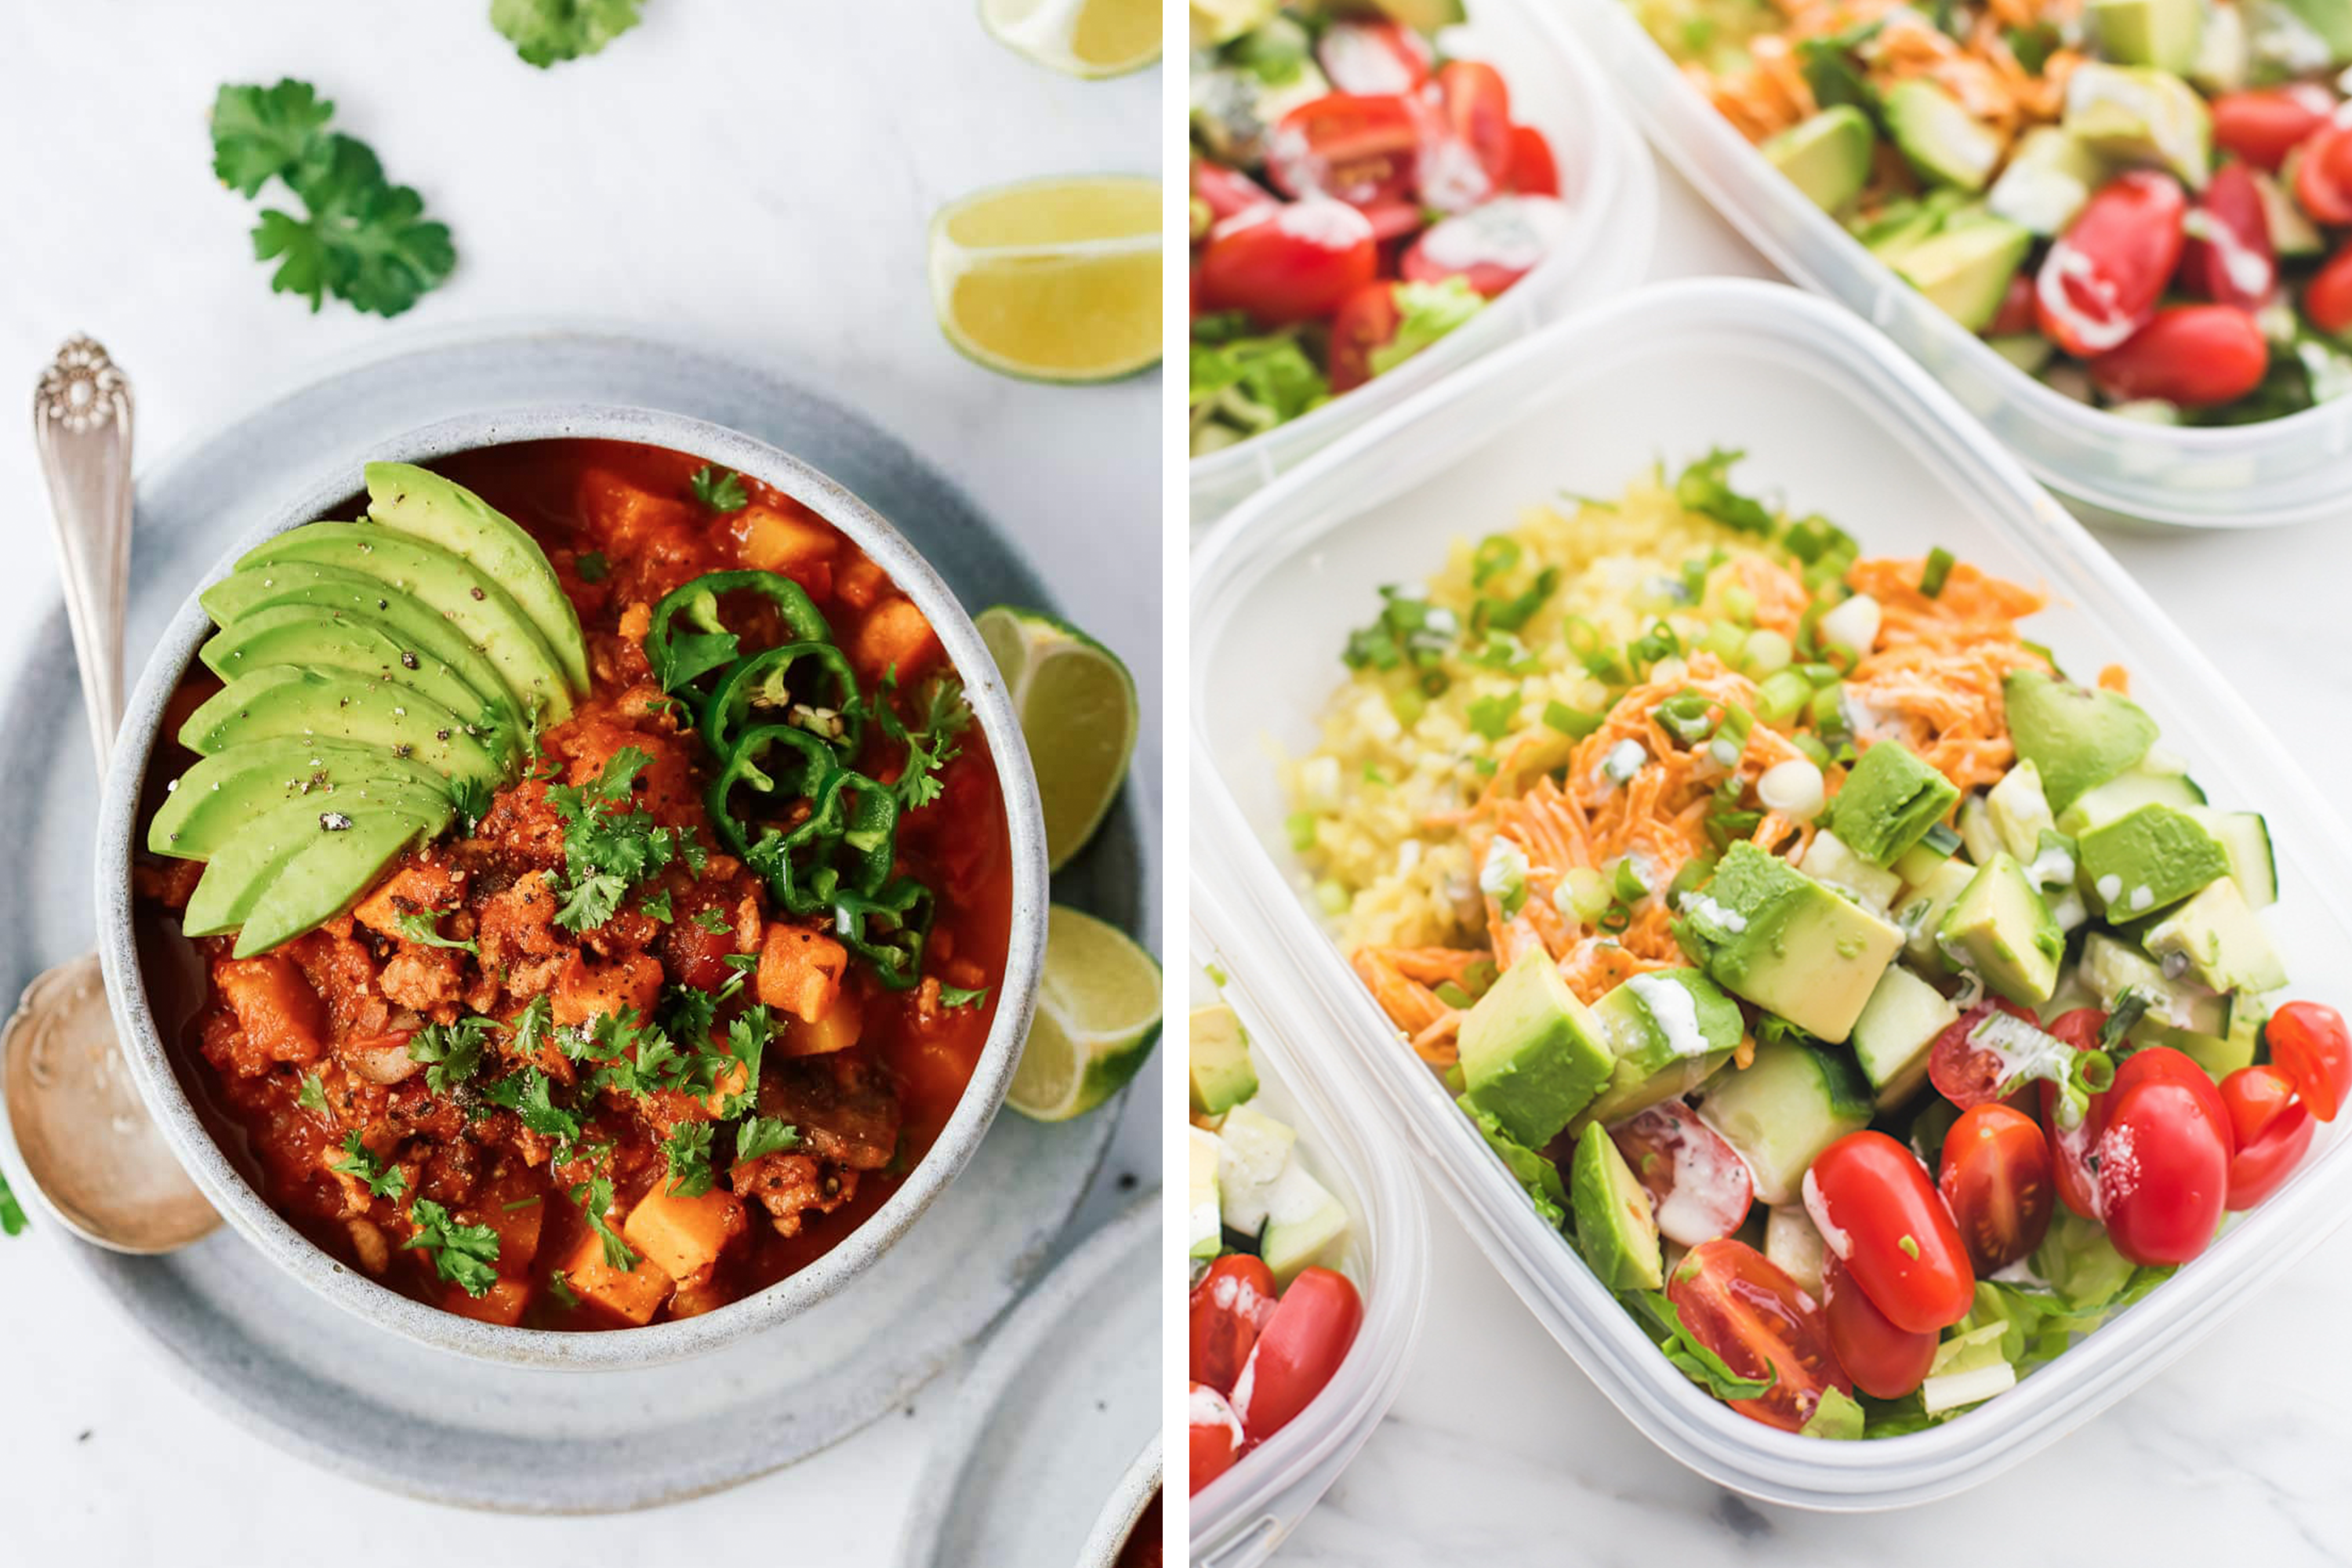 The 10 Best Whole30 Recipes To Start the New Year